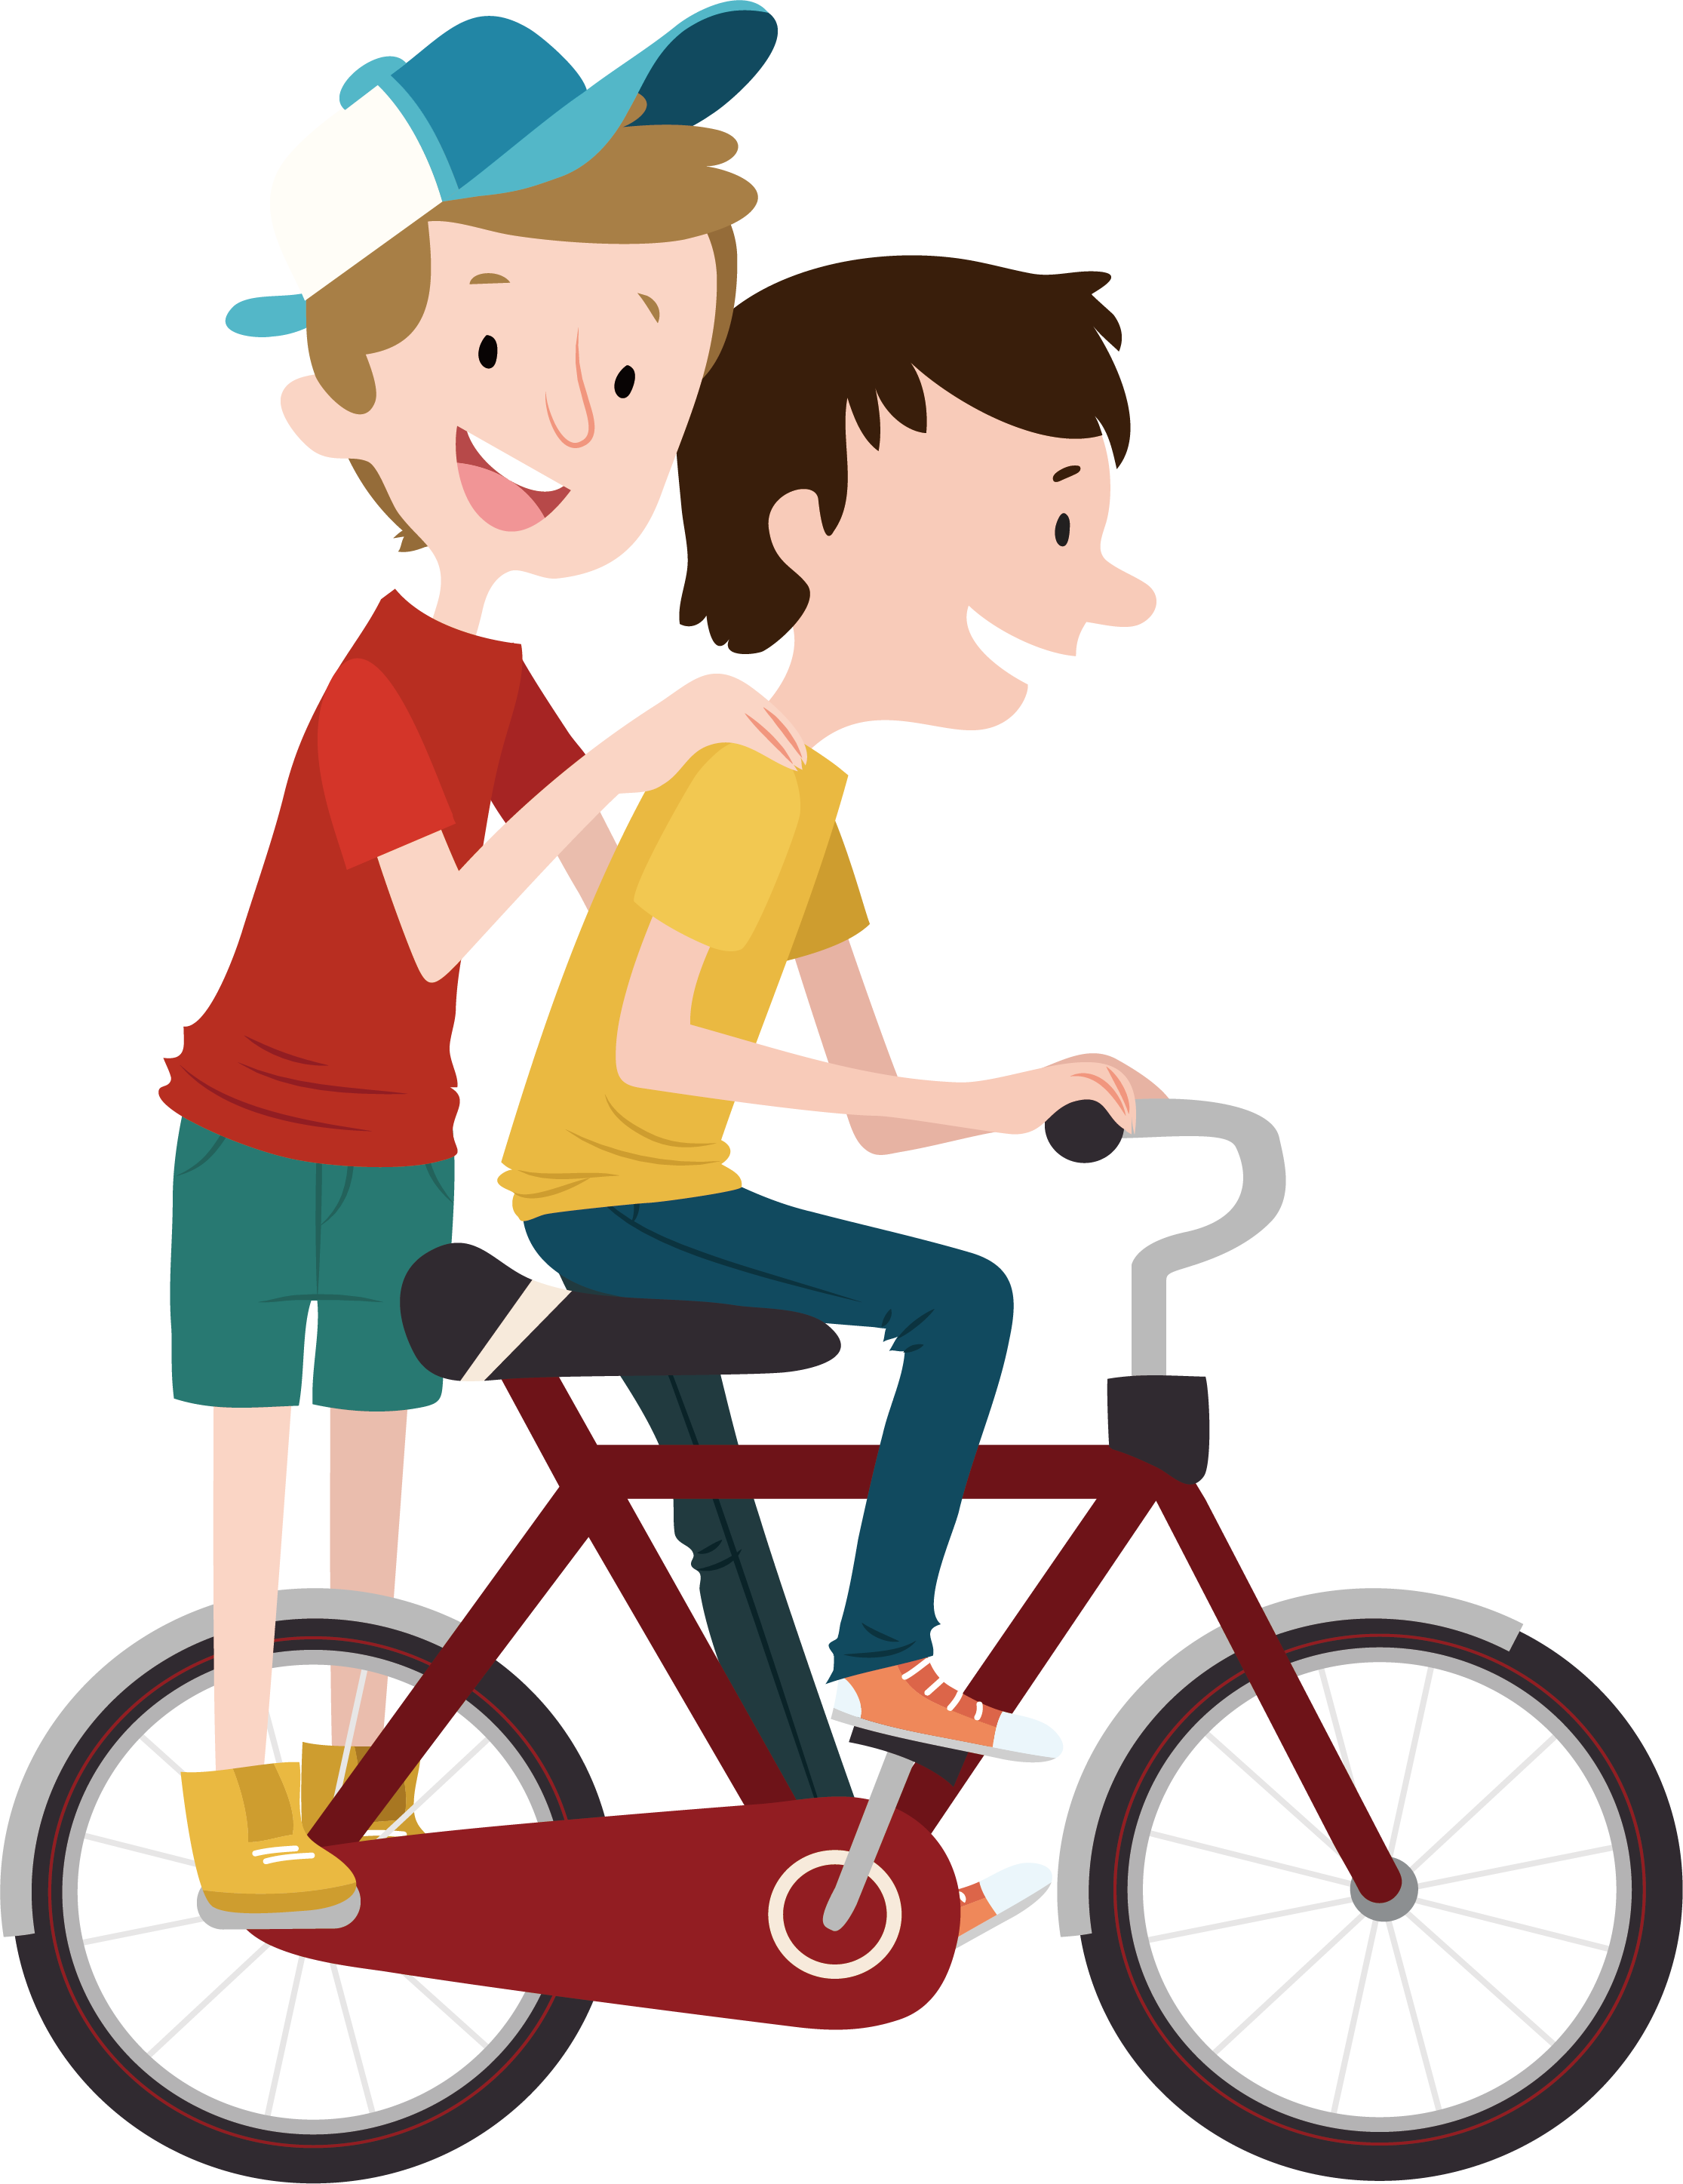 Young clipart young brother. Bicycle child cycling during